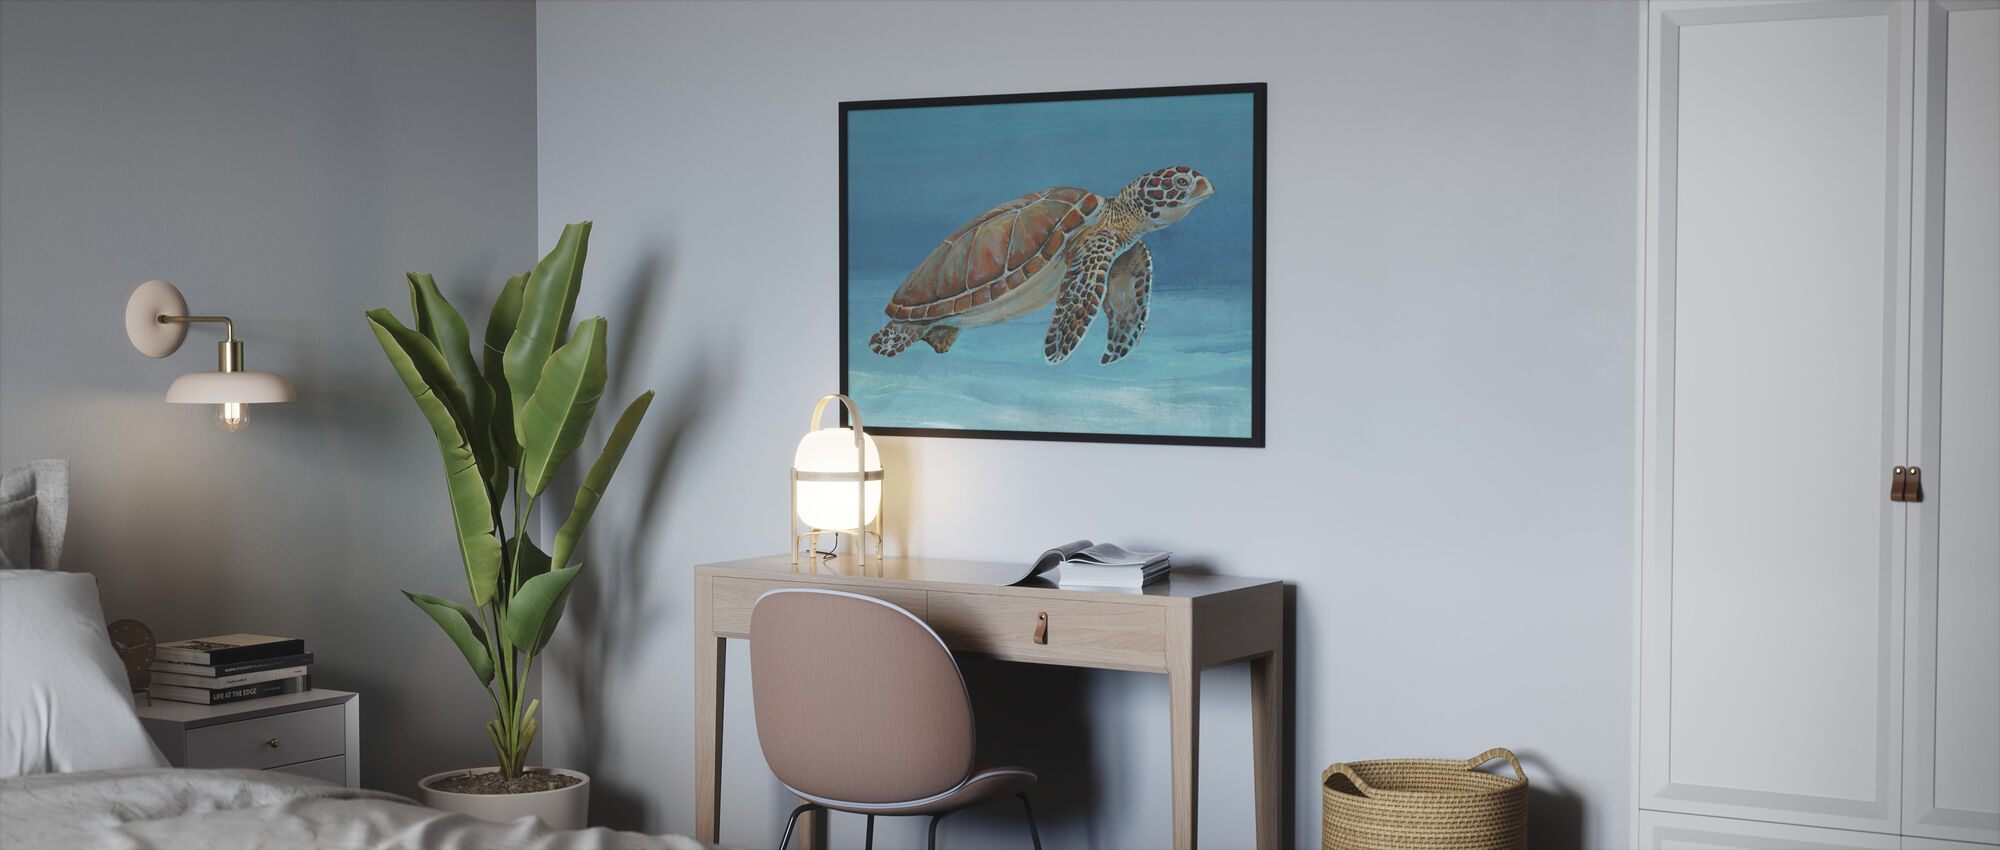 Ocean Sea Turtle - Framed print - Bedroom